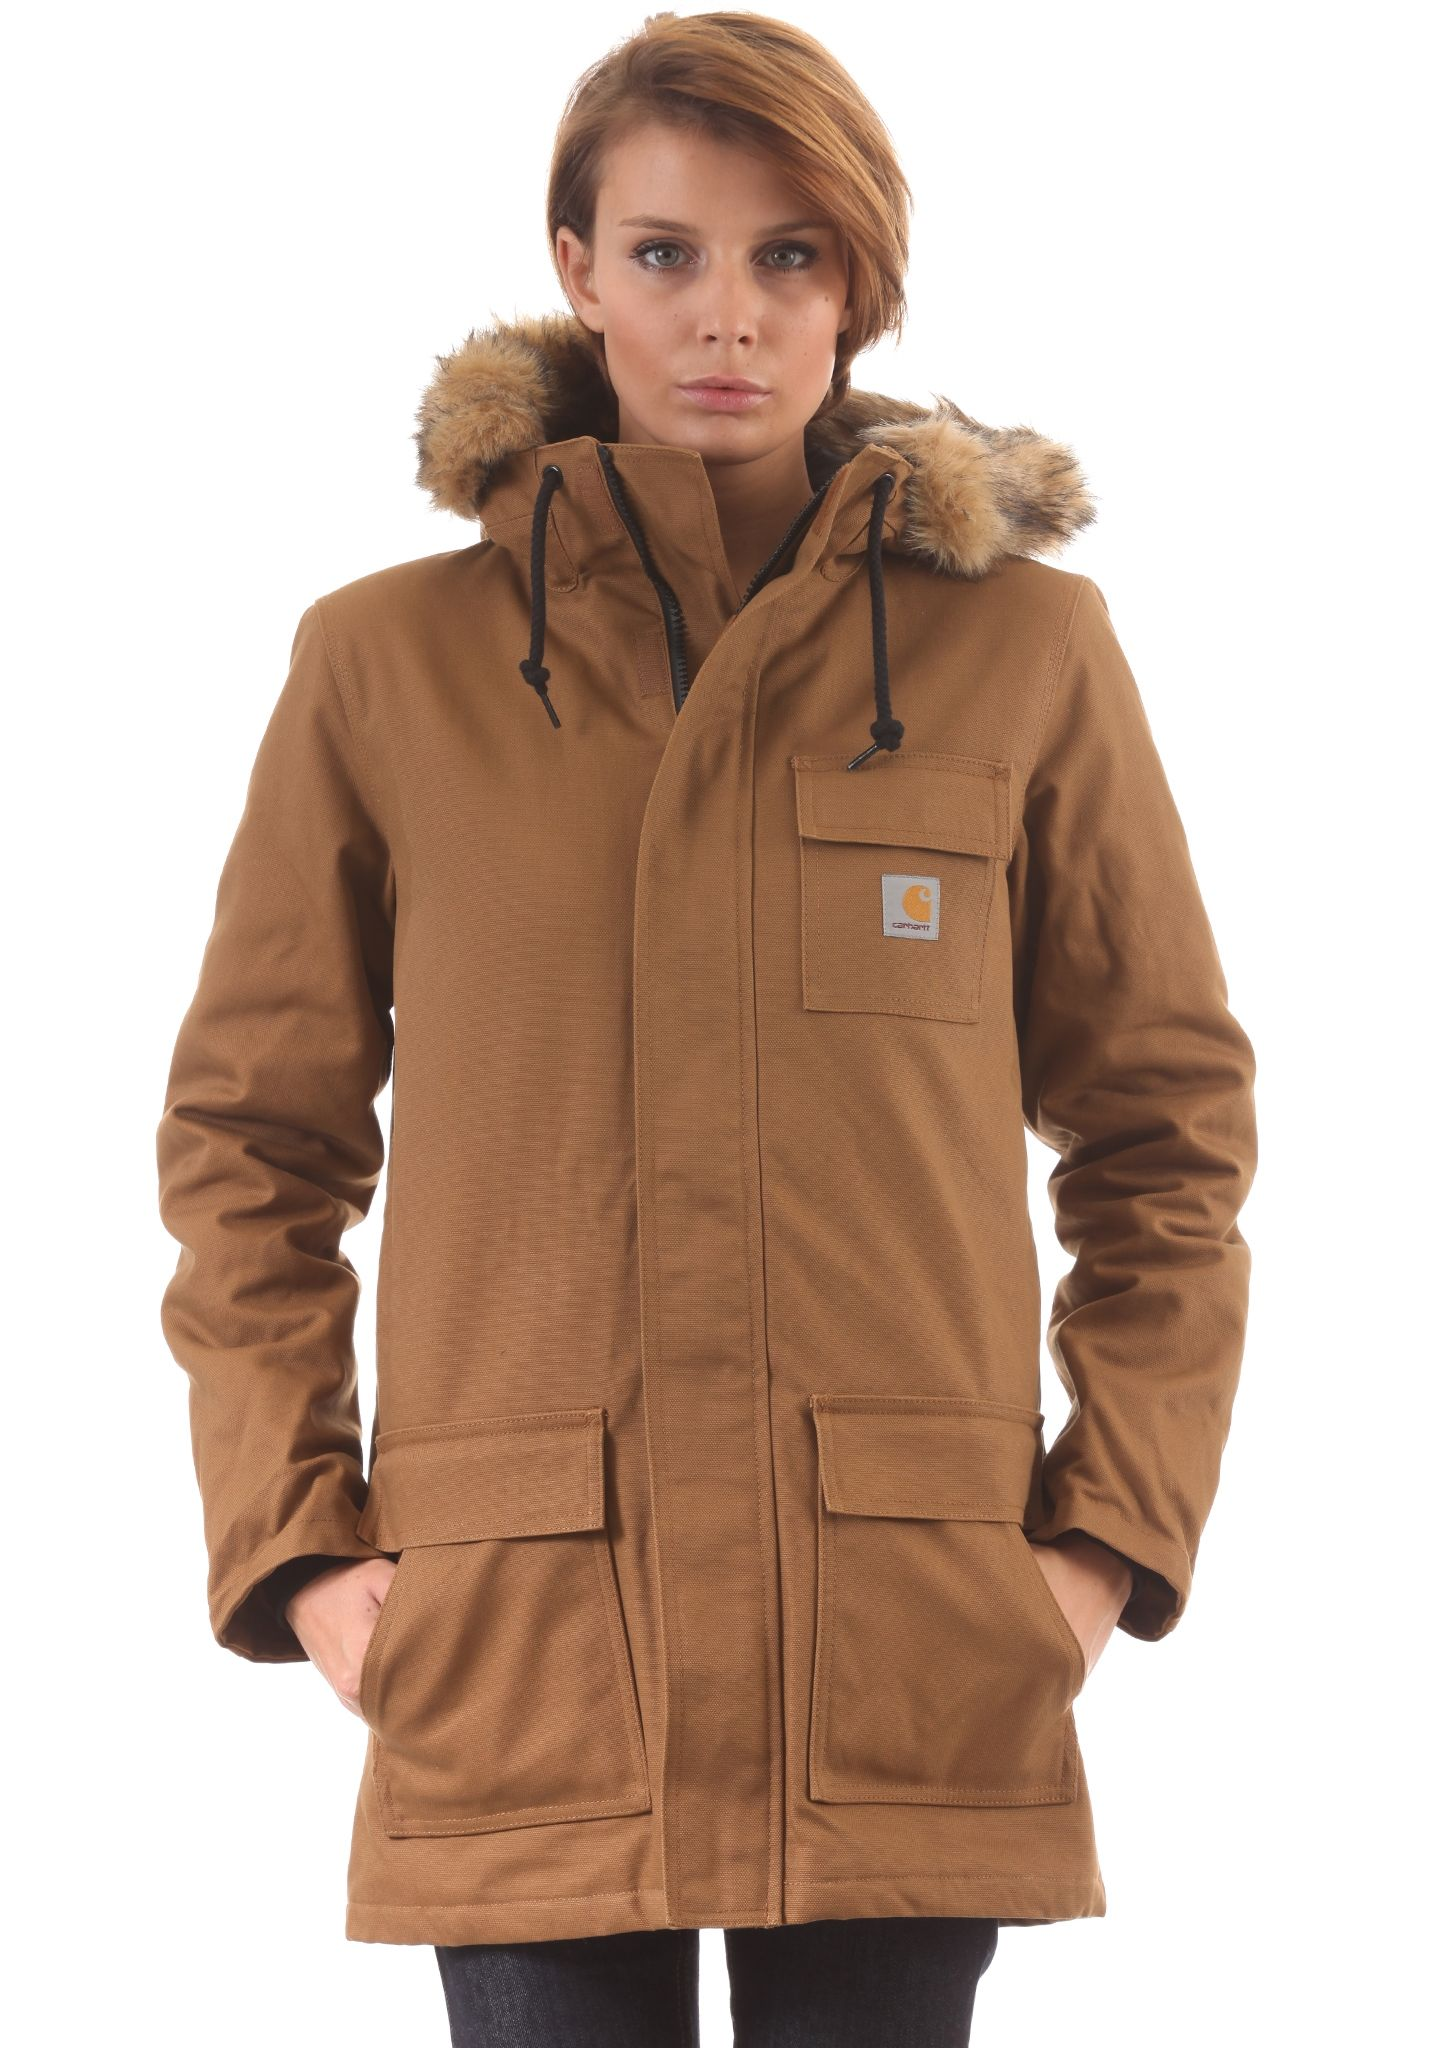 carhartt WIP X  Siberian Parka - Coat for Women - Brown - Planet Sports 257dce5c17